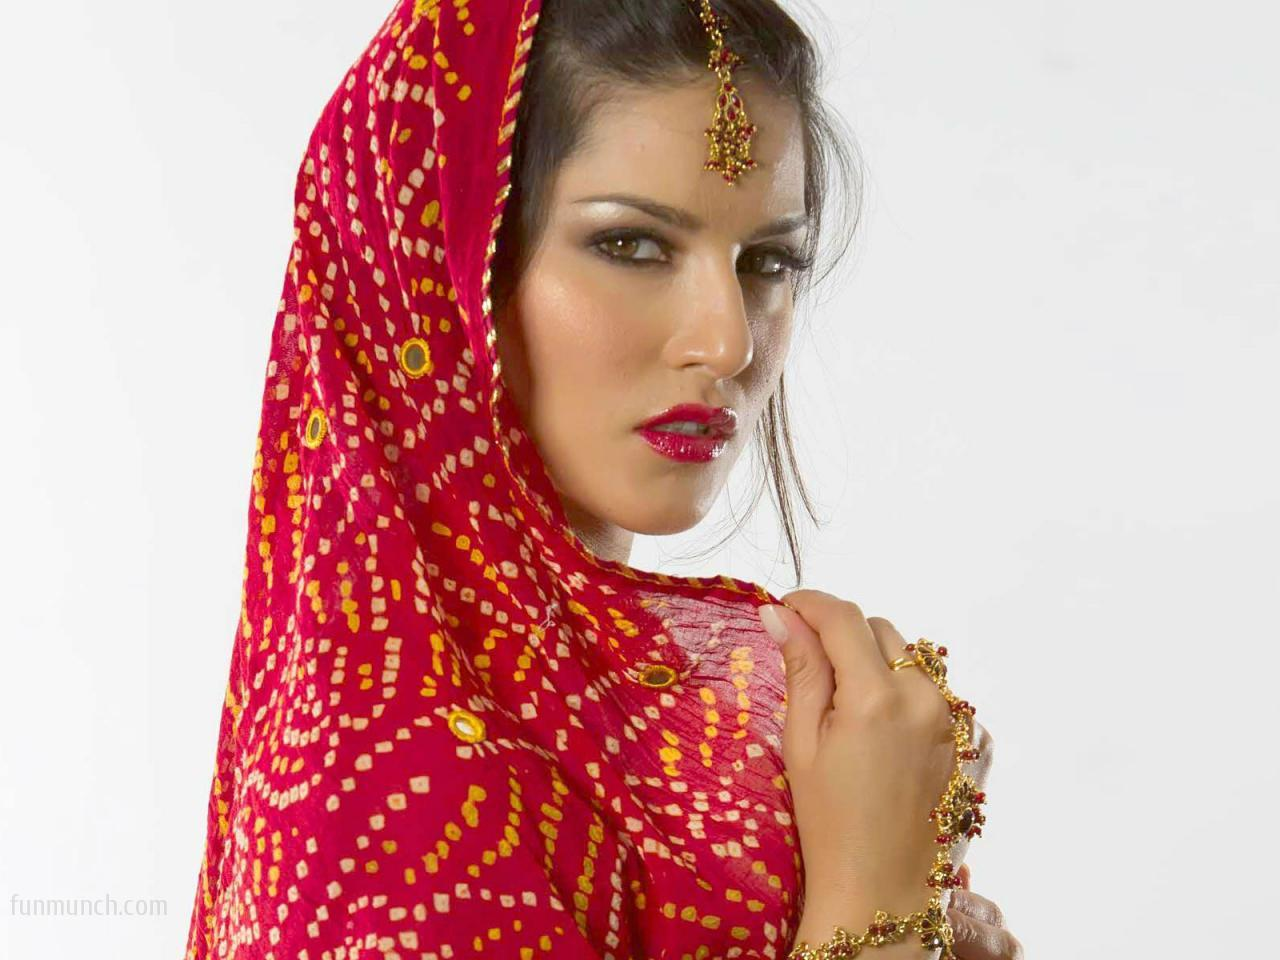 Sunny Leone HD Wallpapers  live wallpaper HD Desktop Wallpapers 1280x960